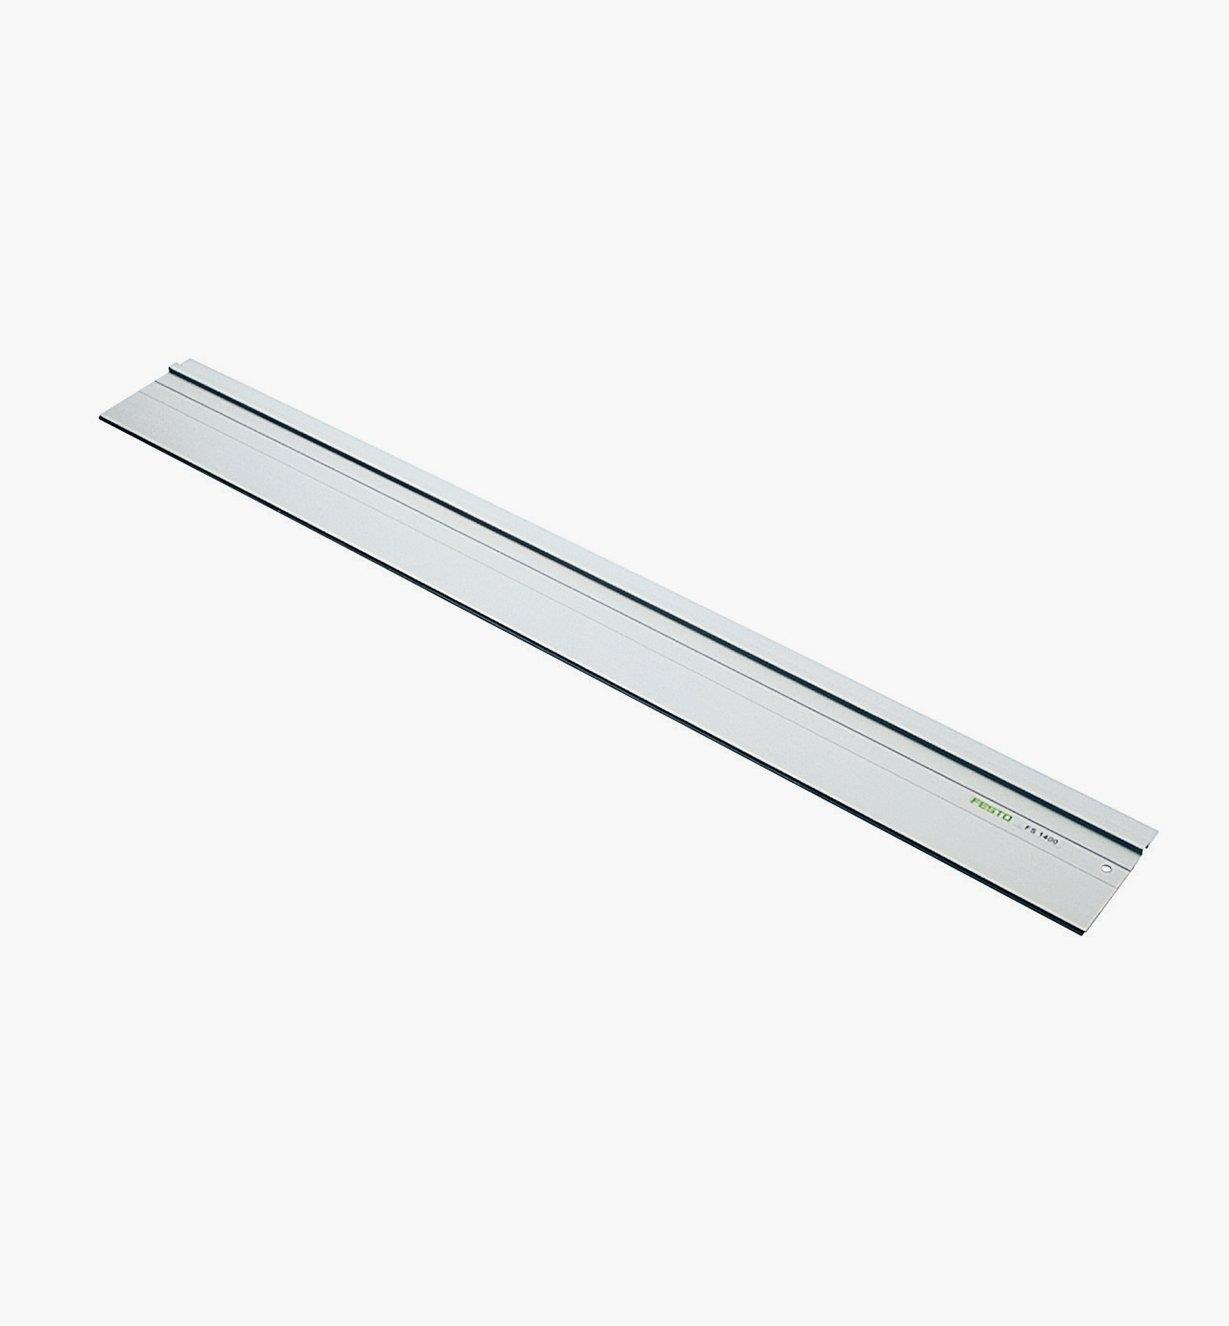 ZA491498 - Rail de guidage FS 1400/2, 1400 mm (55 po)